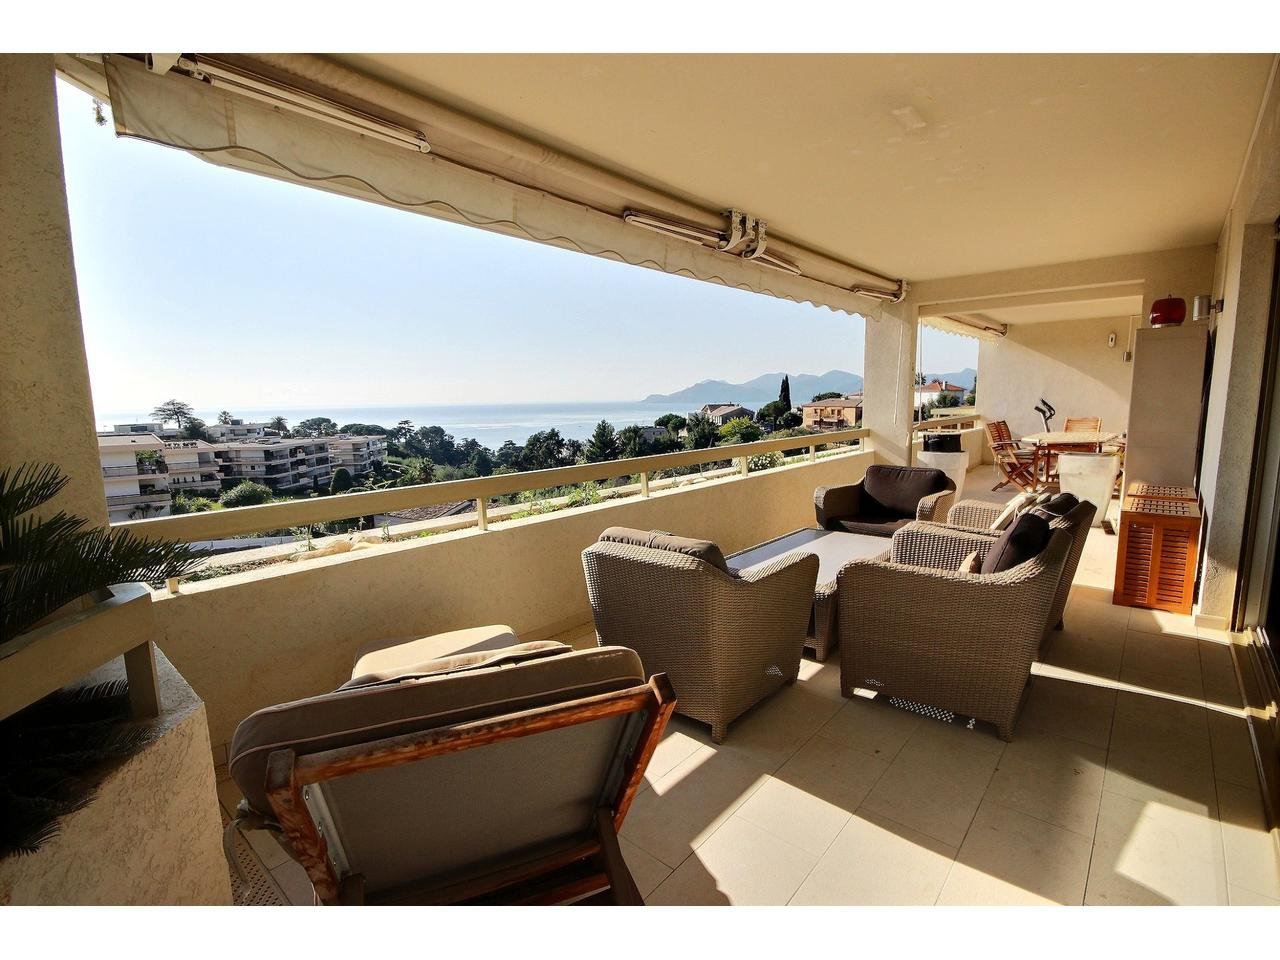 3 bedroom apartment for sale in Cannes Croix des Gardes with panoramic sea view